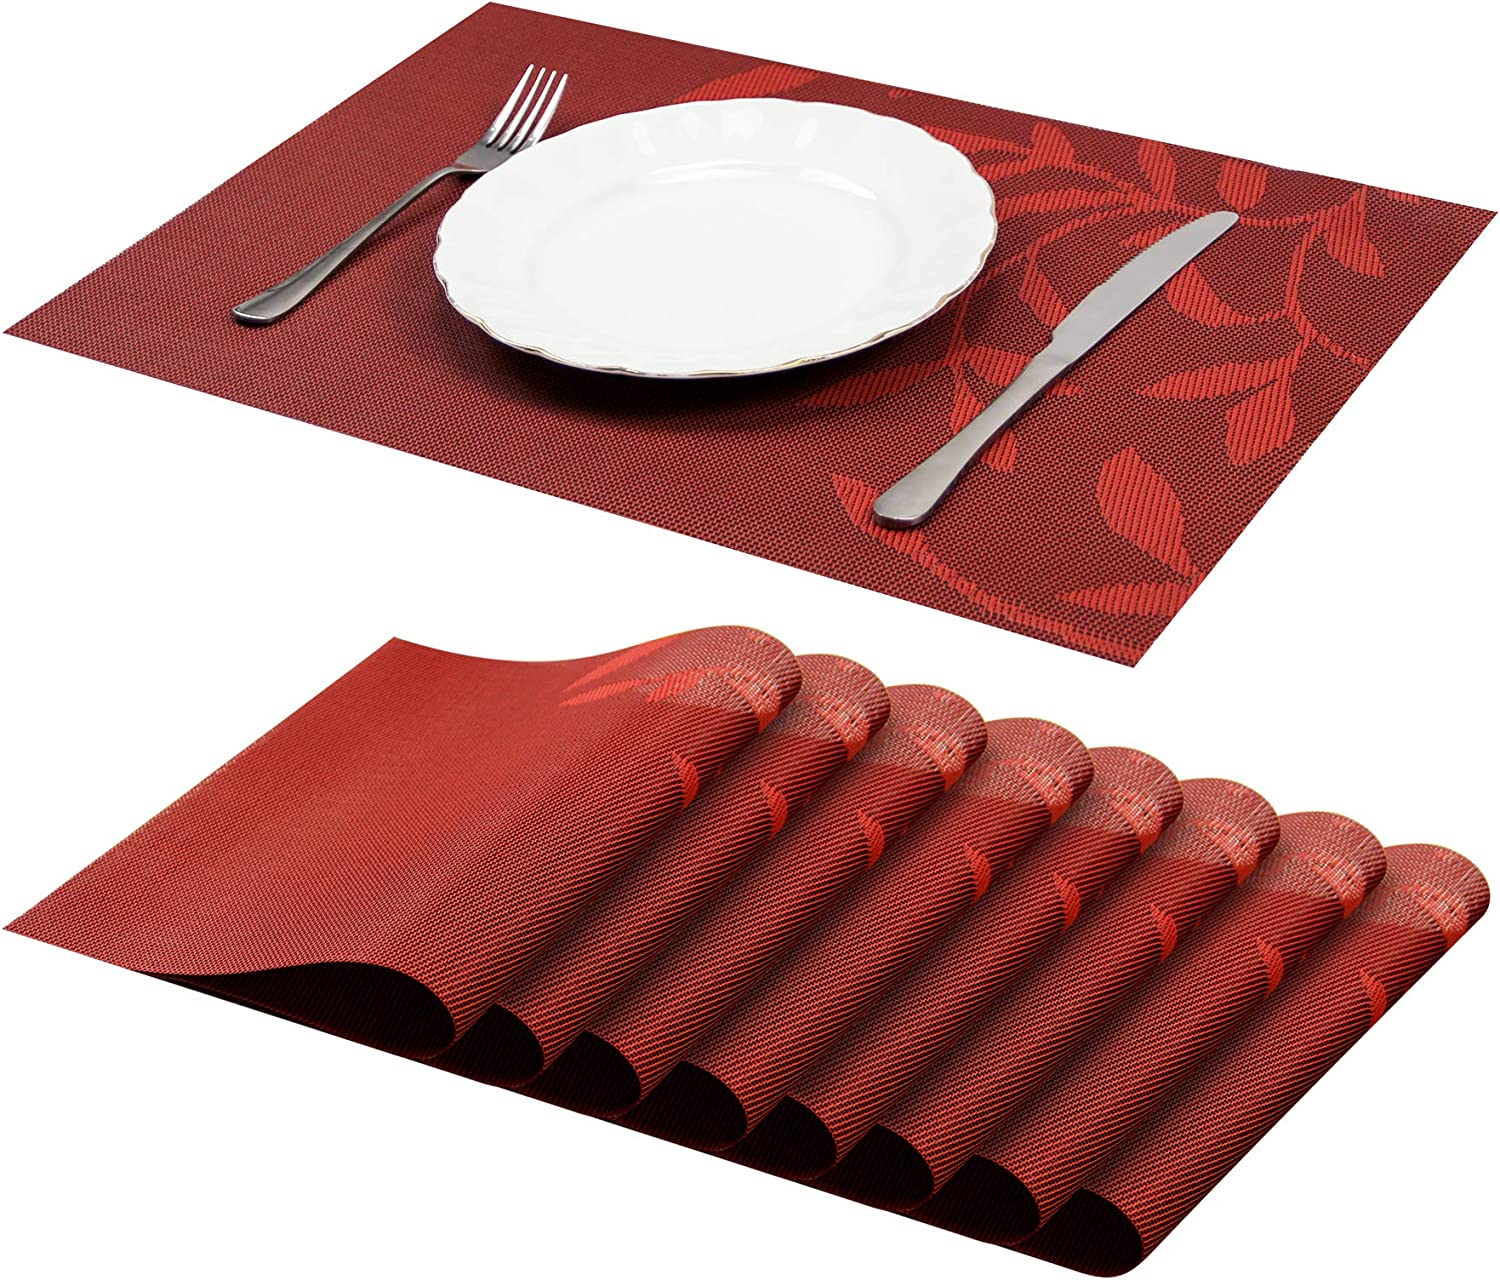 Jujin Placemats Set of 8 Non-Slip Washable PVC Heat Resistant Table Mats for Dining Table Brown